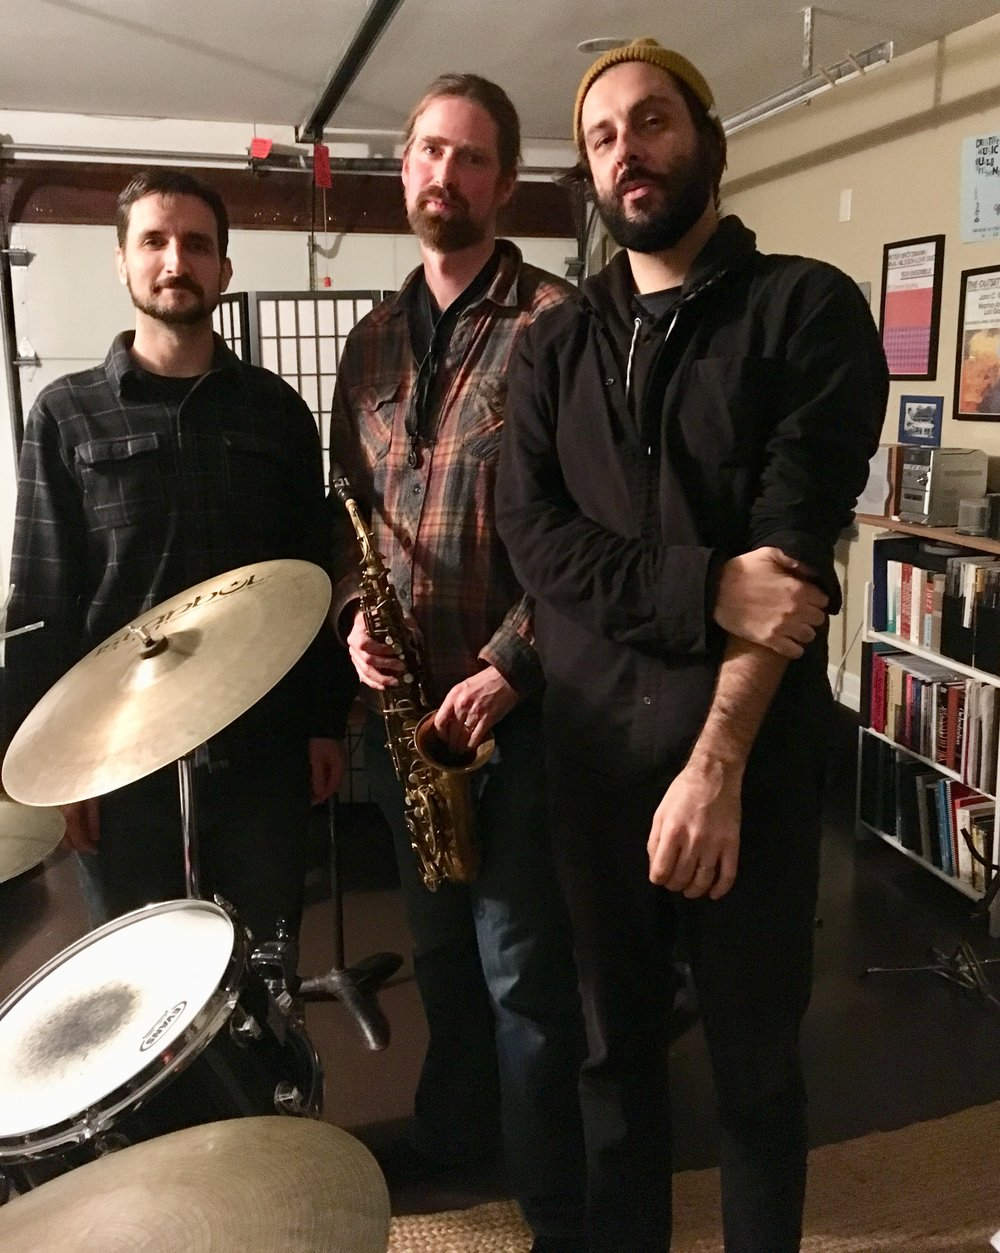 Lie Very Still - 5:15-5:45, Friday, June 6John C. Savage: saxophones, flutes, and compositionsMike Gamble: electric guitarKen Ollis: drum setPresented by the Creative Music Guild